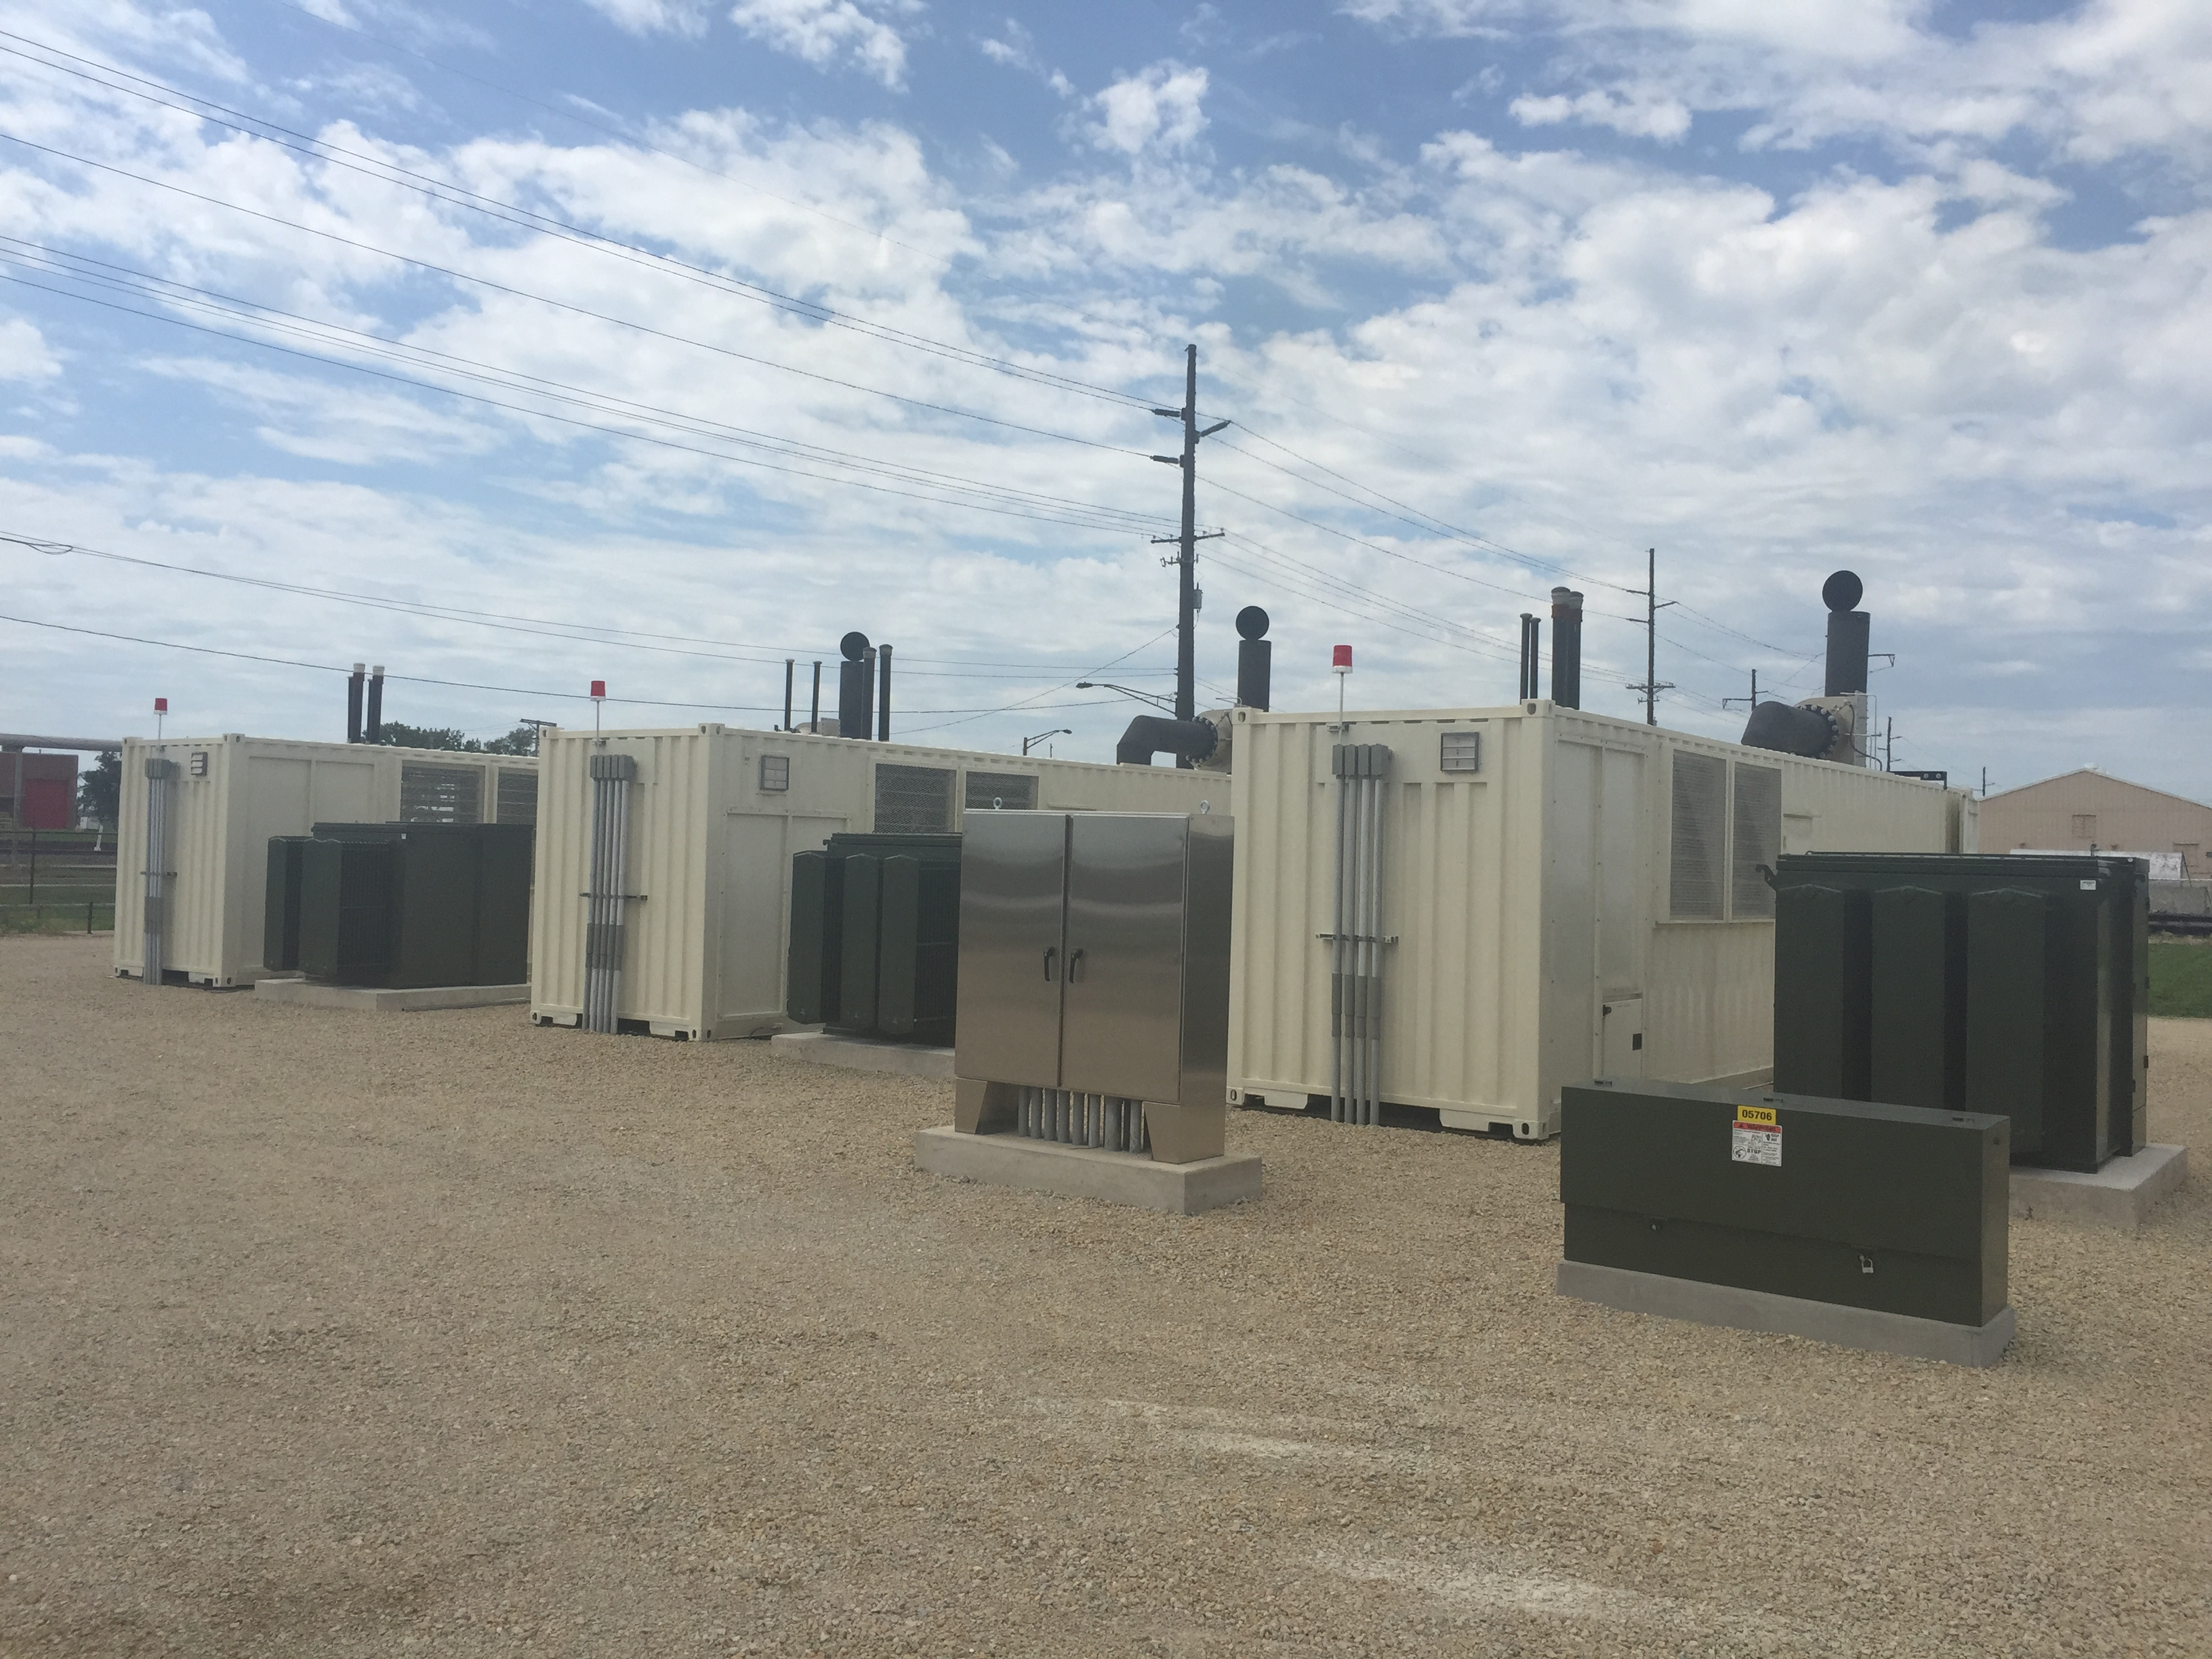 6 MW units June 10 first day running